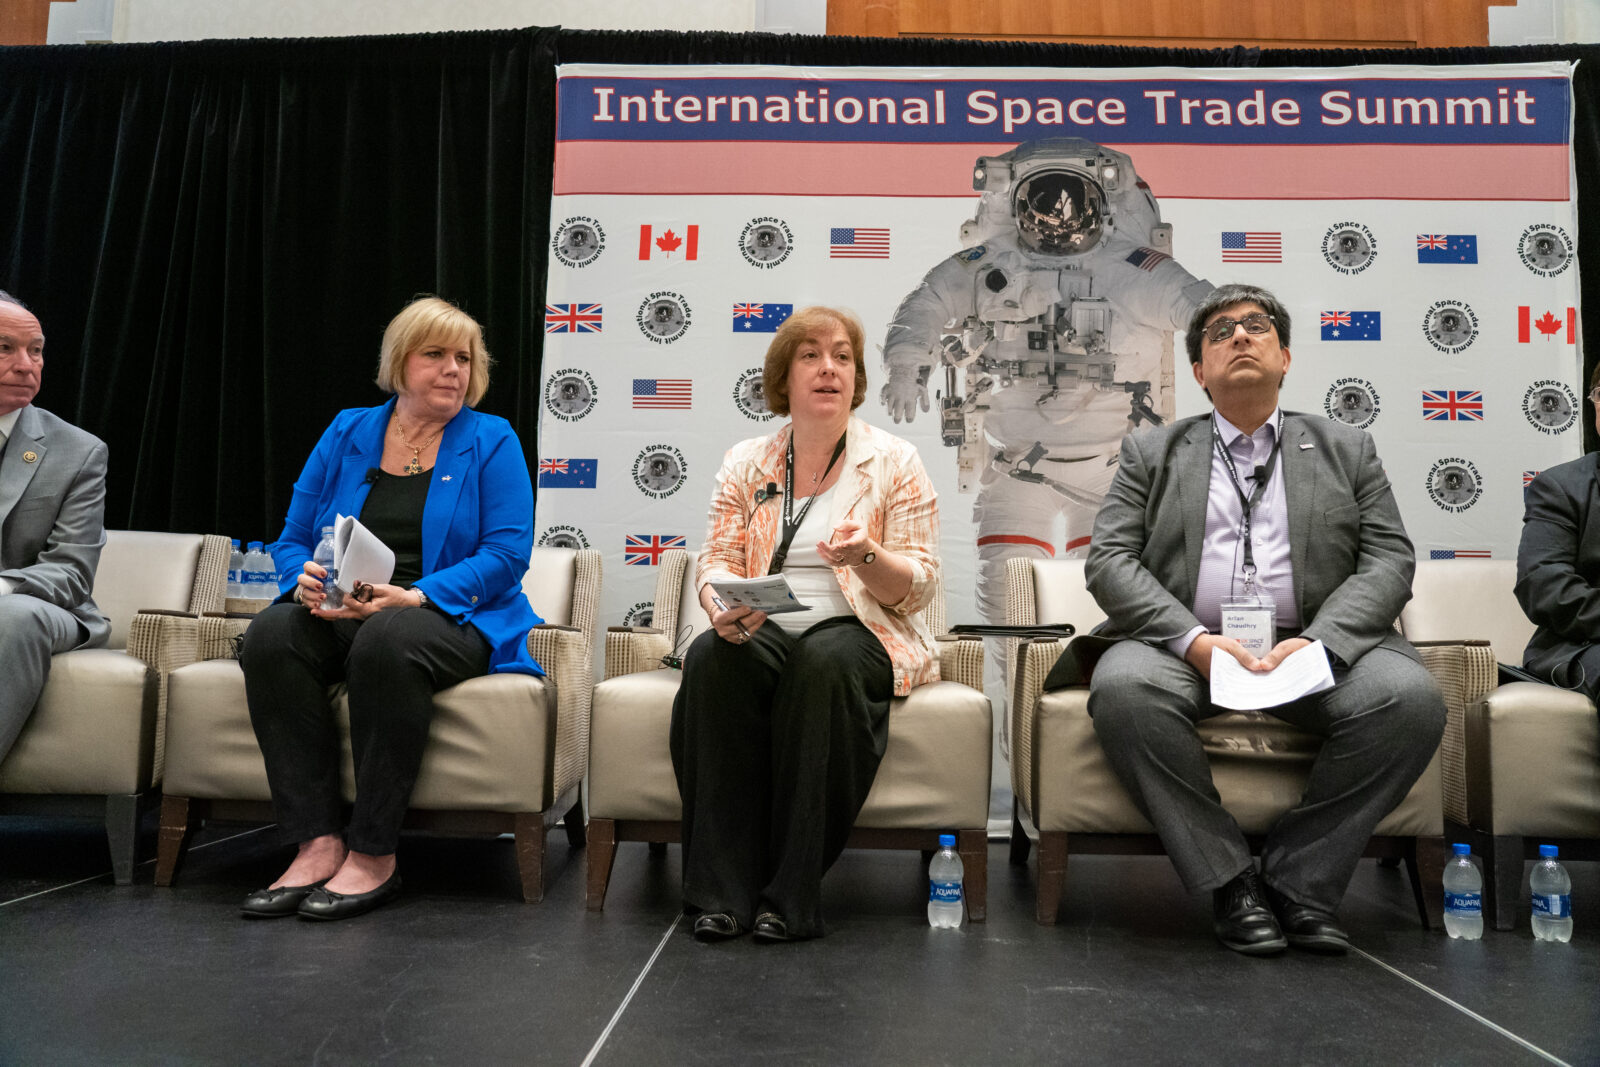 Melanie Saunders, Mary Preville, Arfan Chaudhry